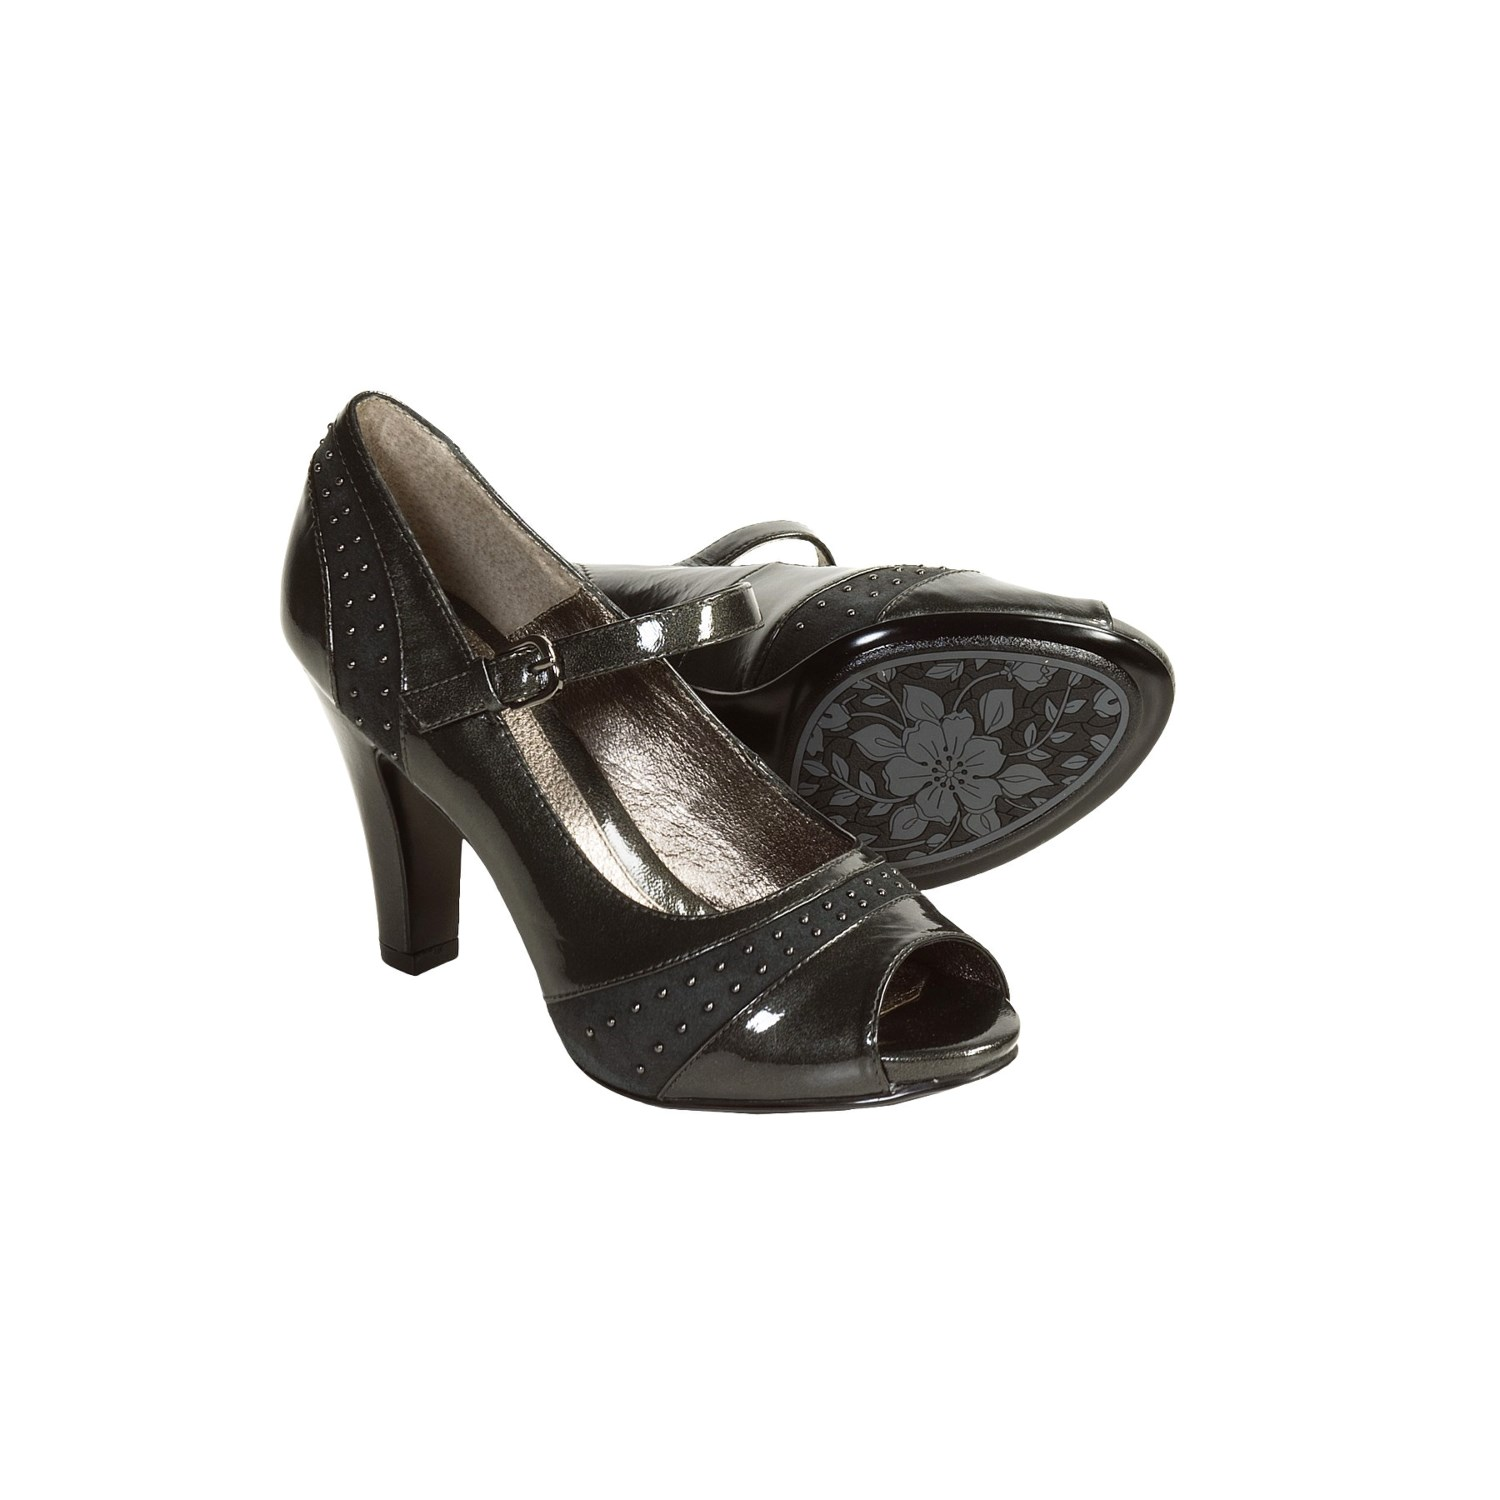 Online shoes for women. Flats shoes womens